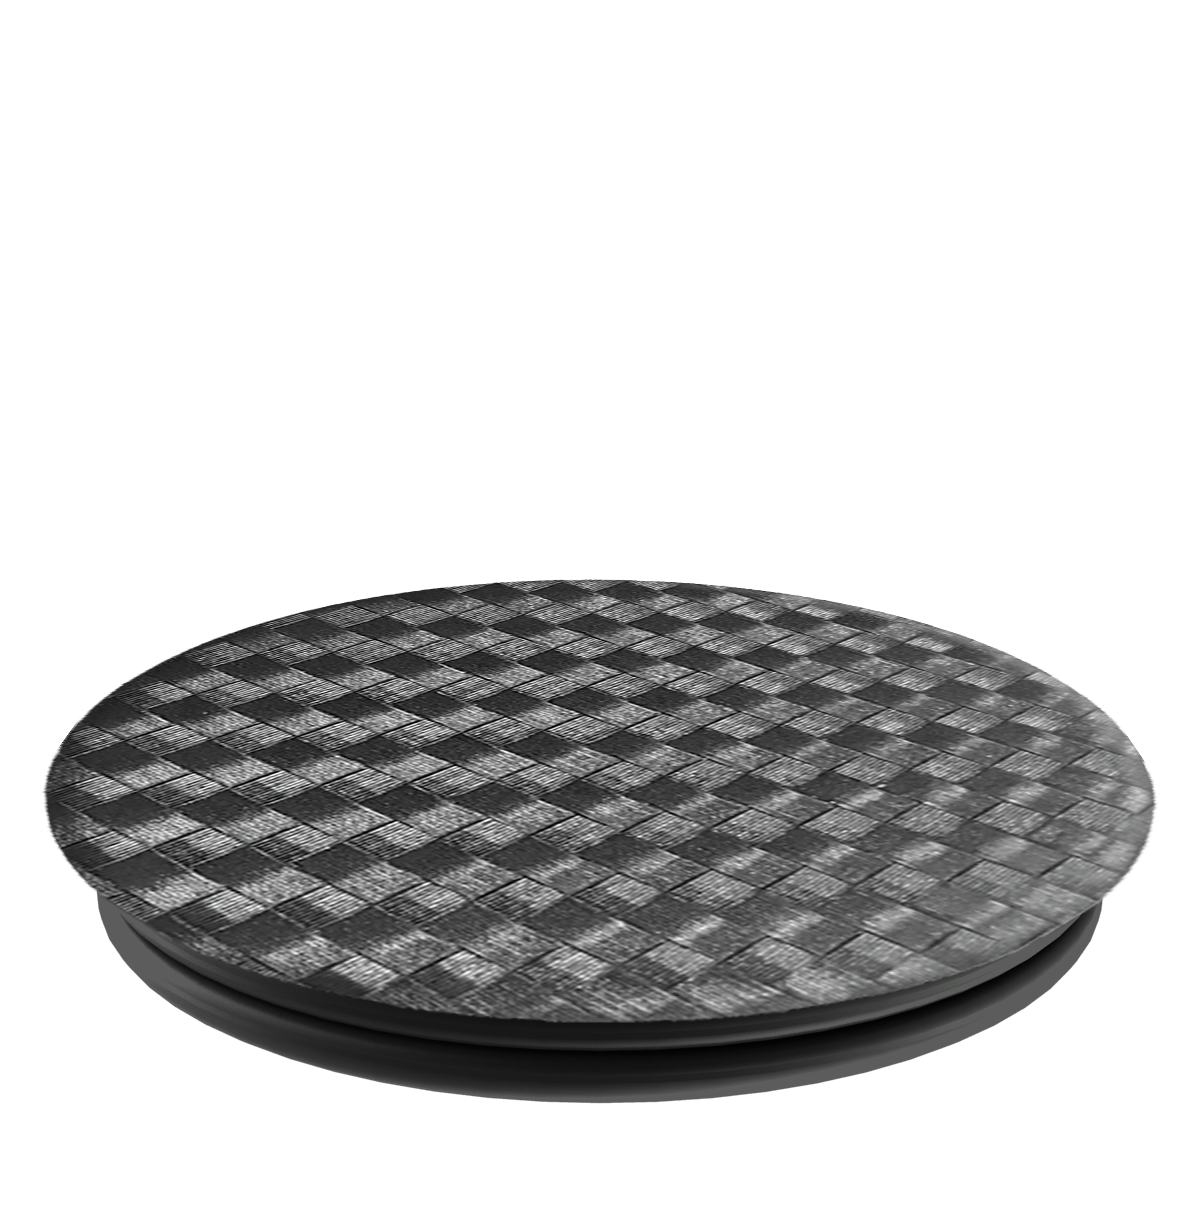 PopSockets Grip Carbonite Weave